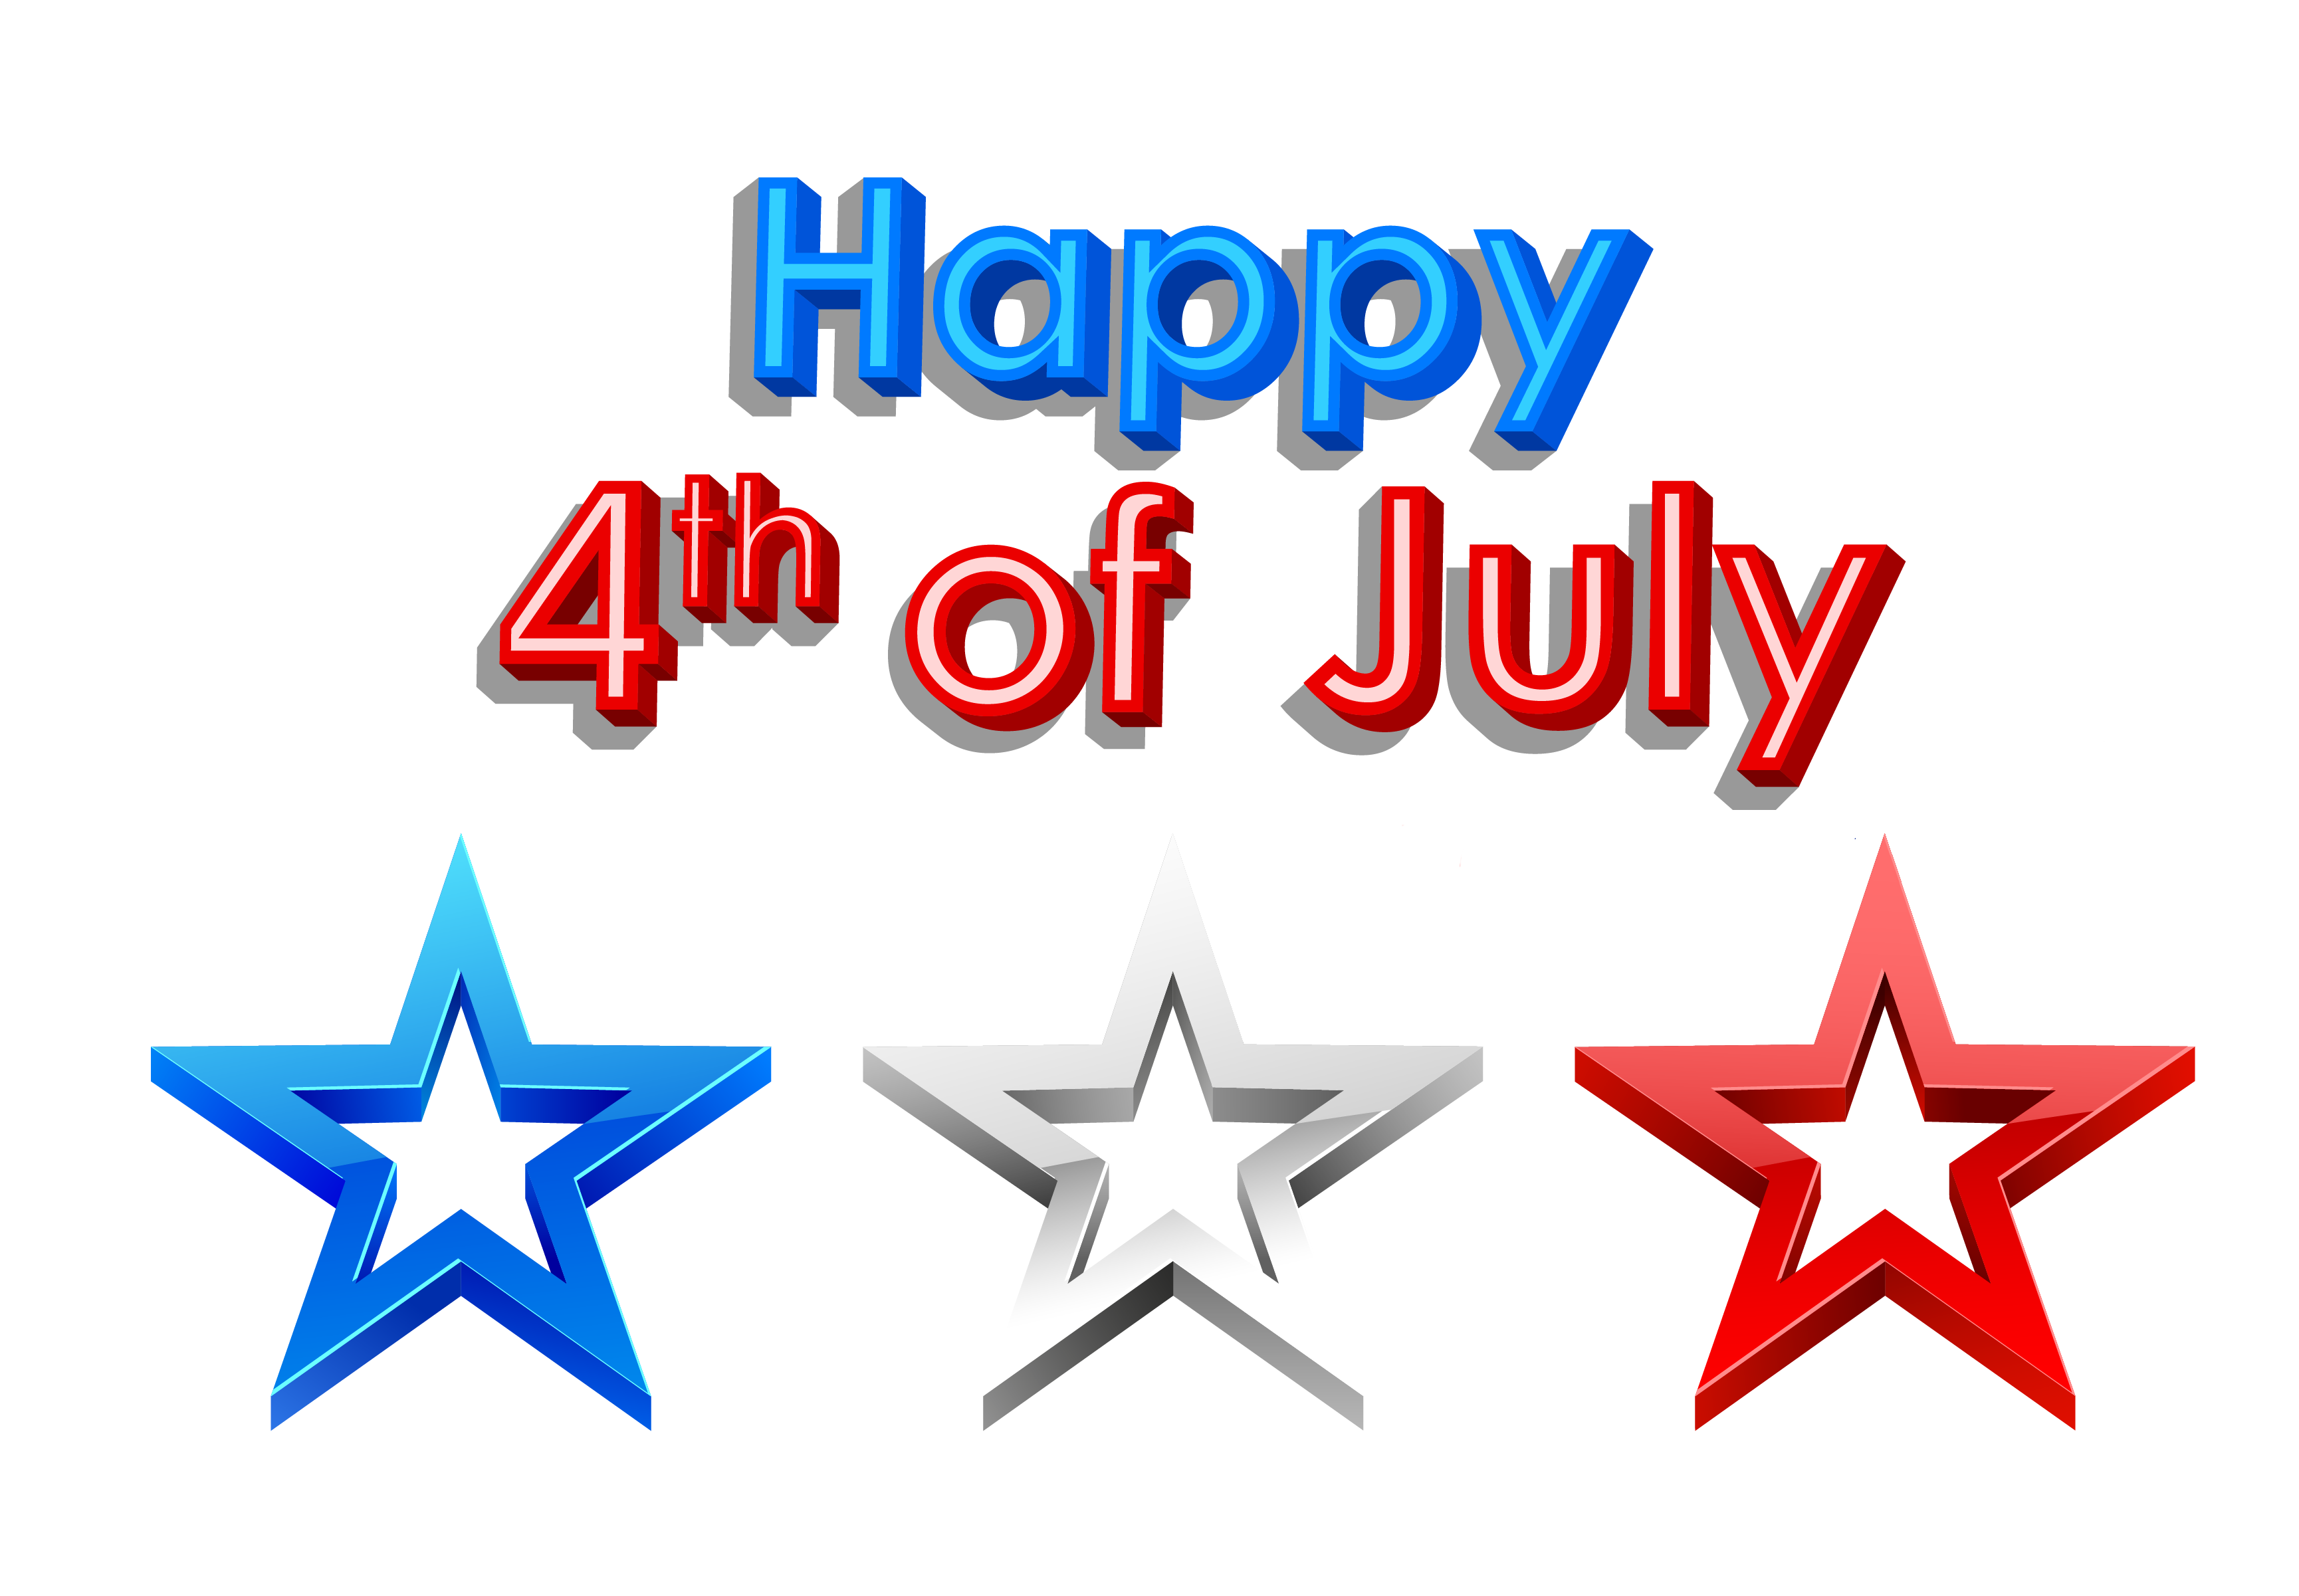 Forth of july clipart.